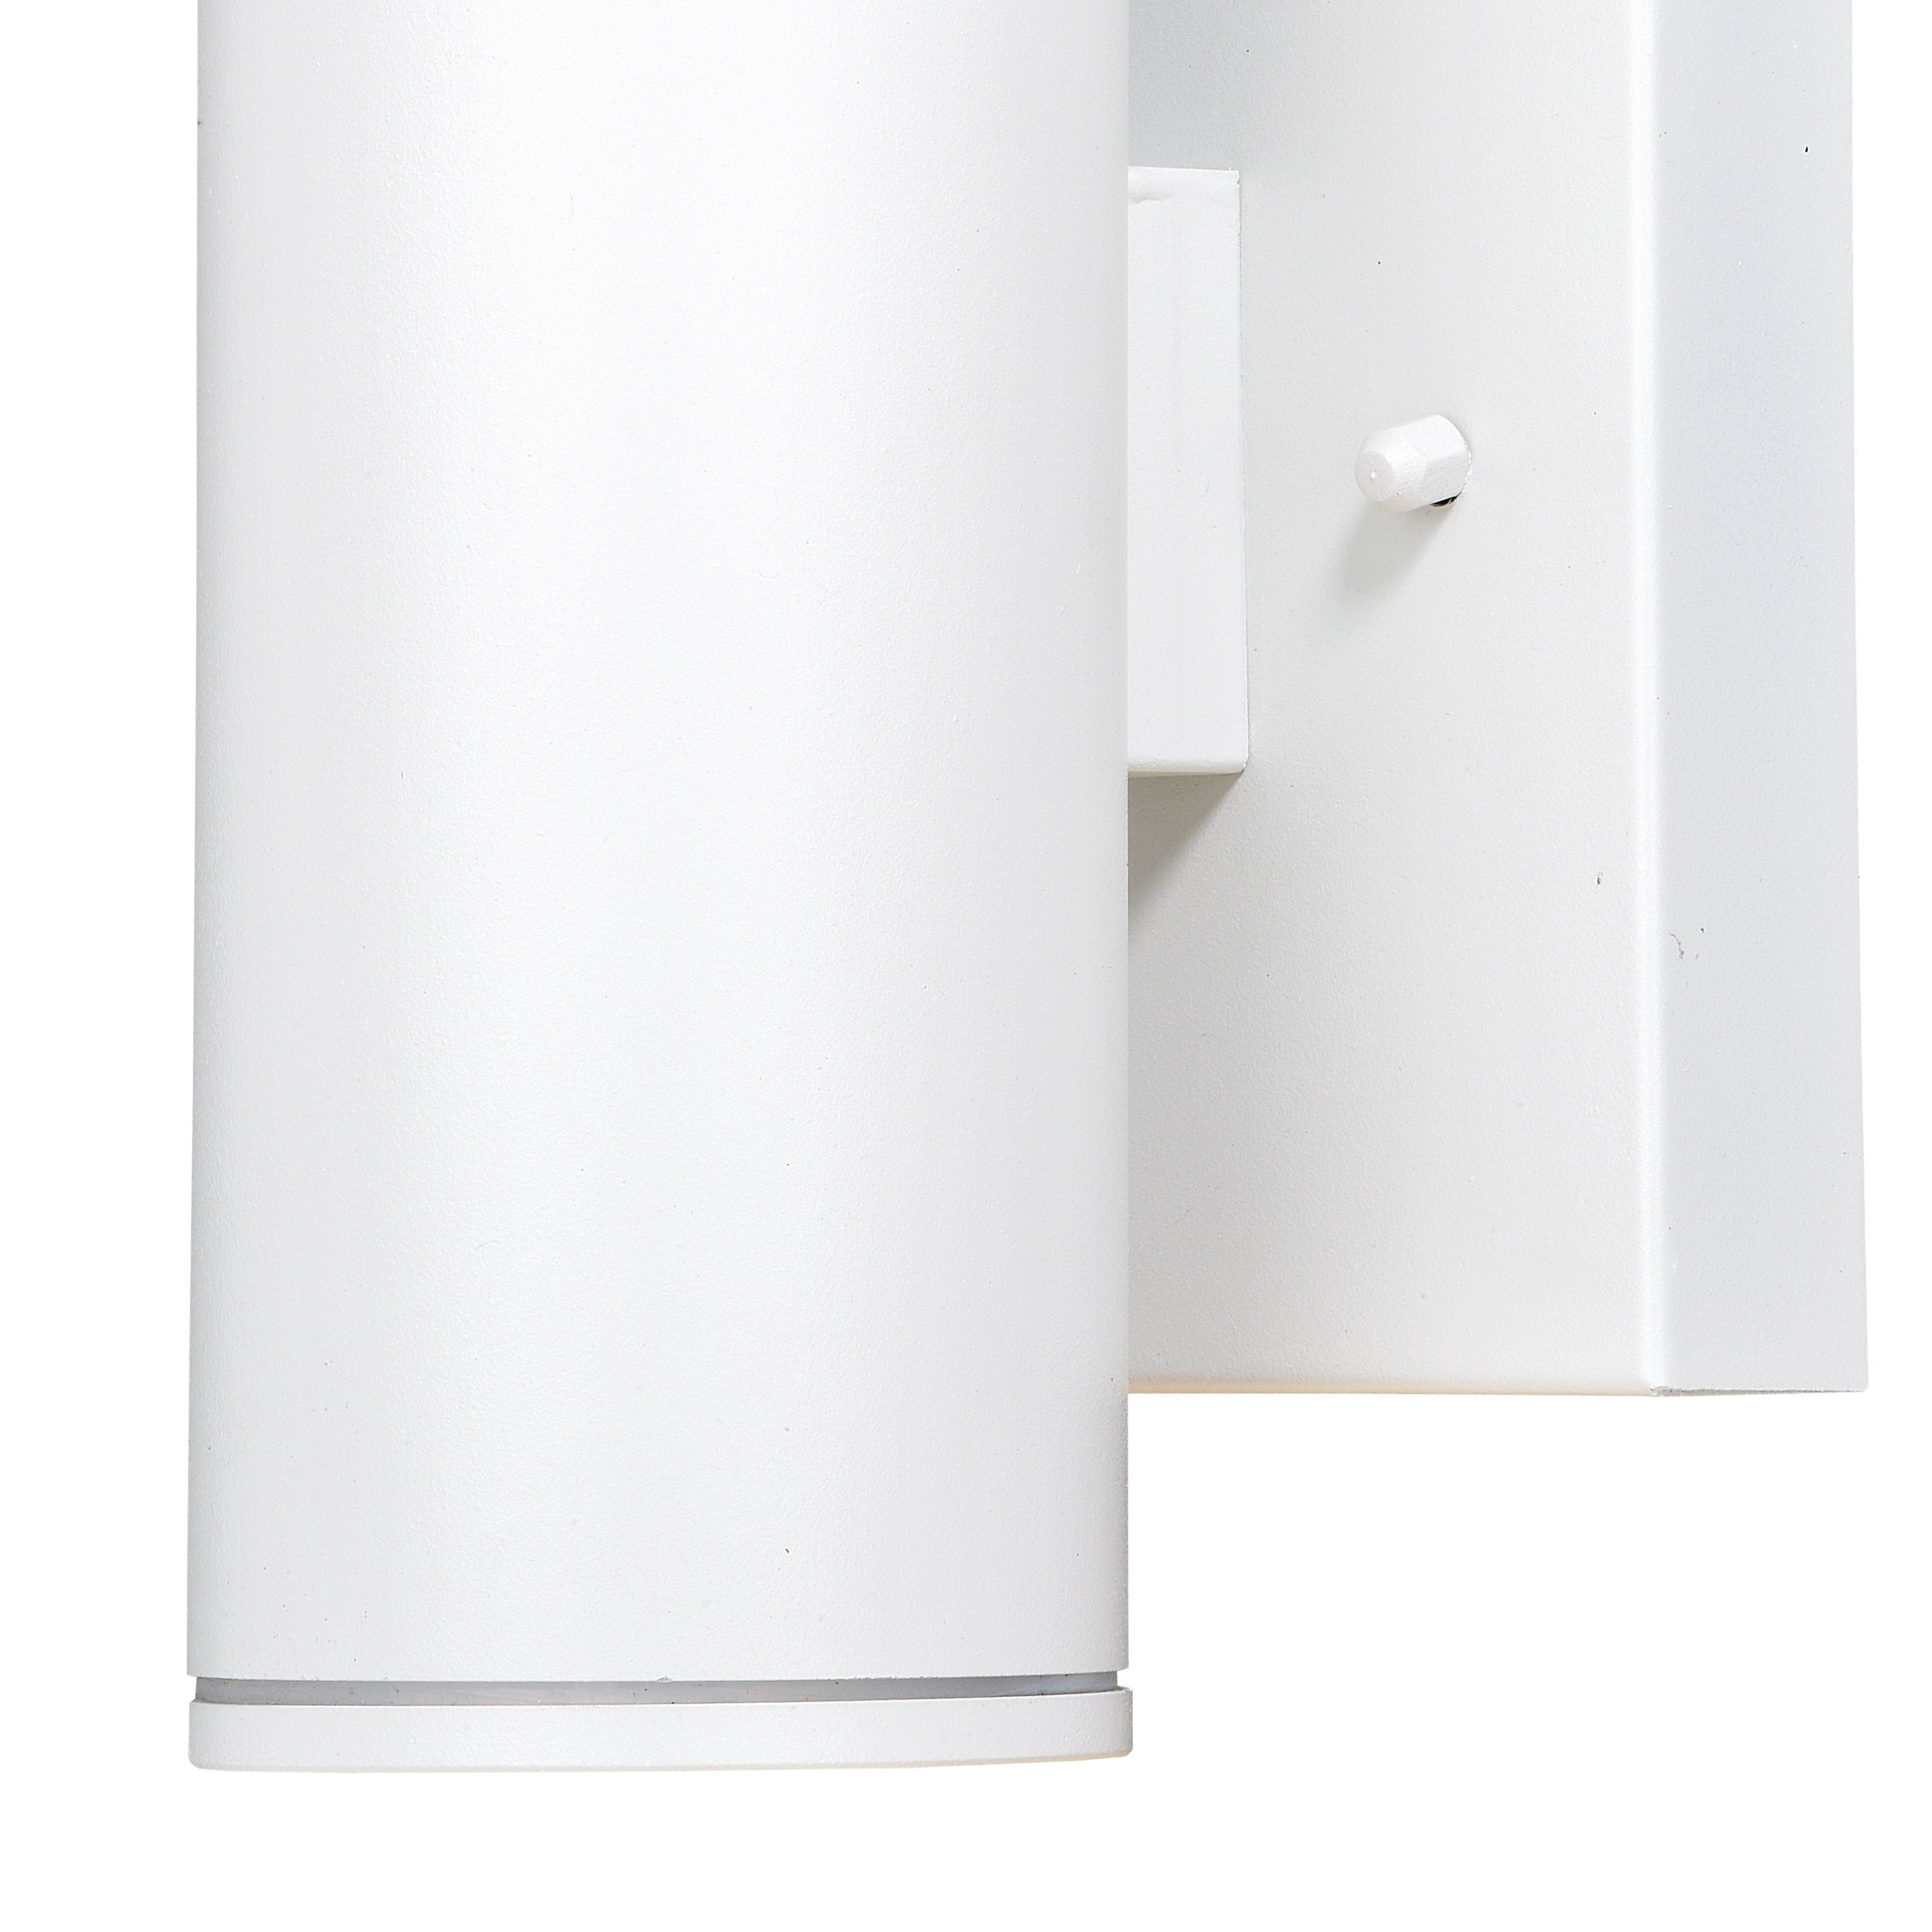 Shop Black Friday Deals On Chiasso White Led Motion Sensor Dusk To Dawn Dark Sky Outdoor Wall Light 4 5 In W X 9 75 In H X 4 75 In D Overstock 20877047